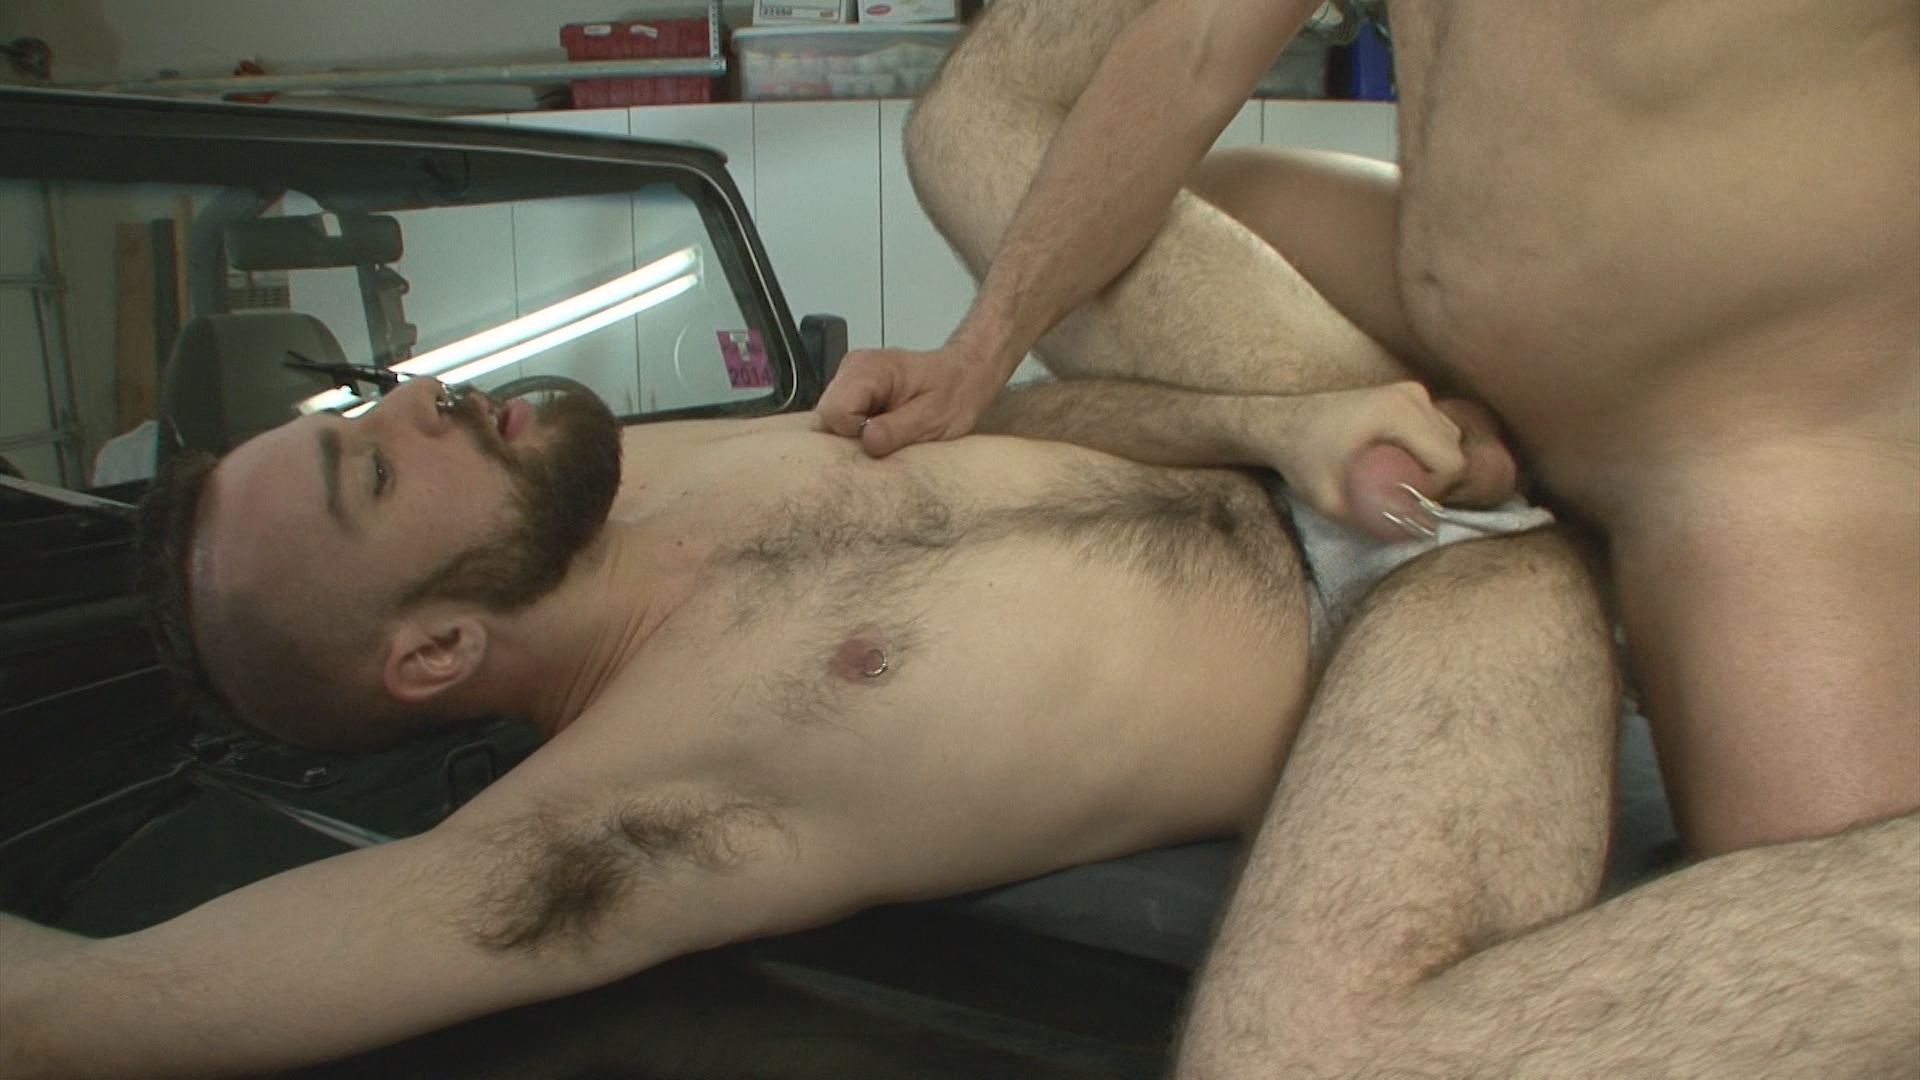 Real Men 30: Heatwave Xvideo gay